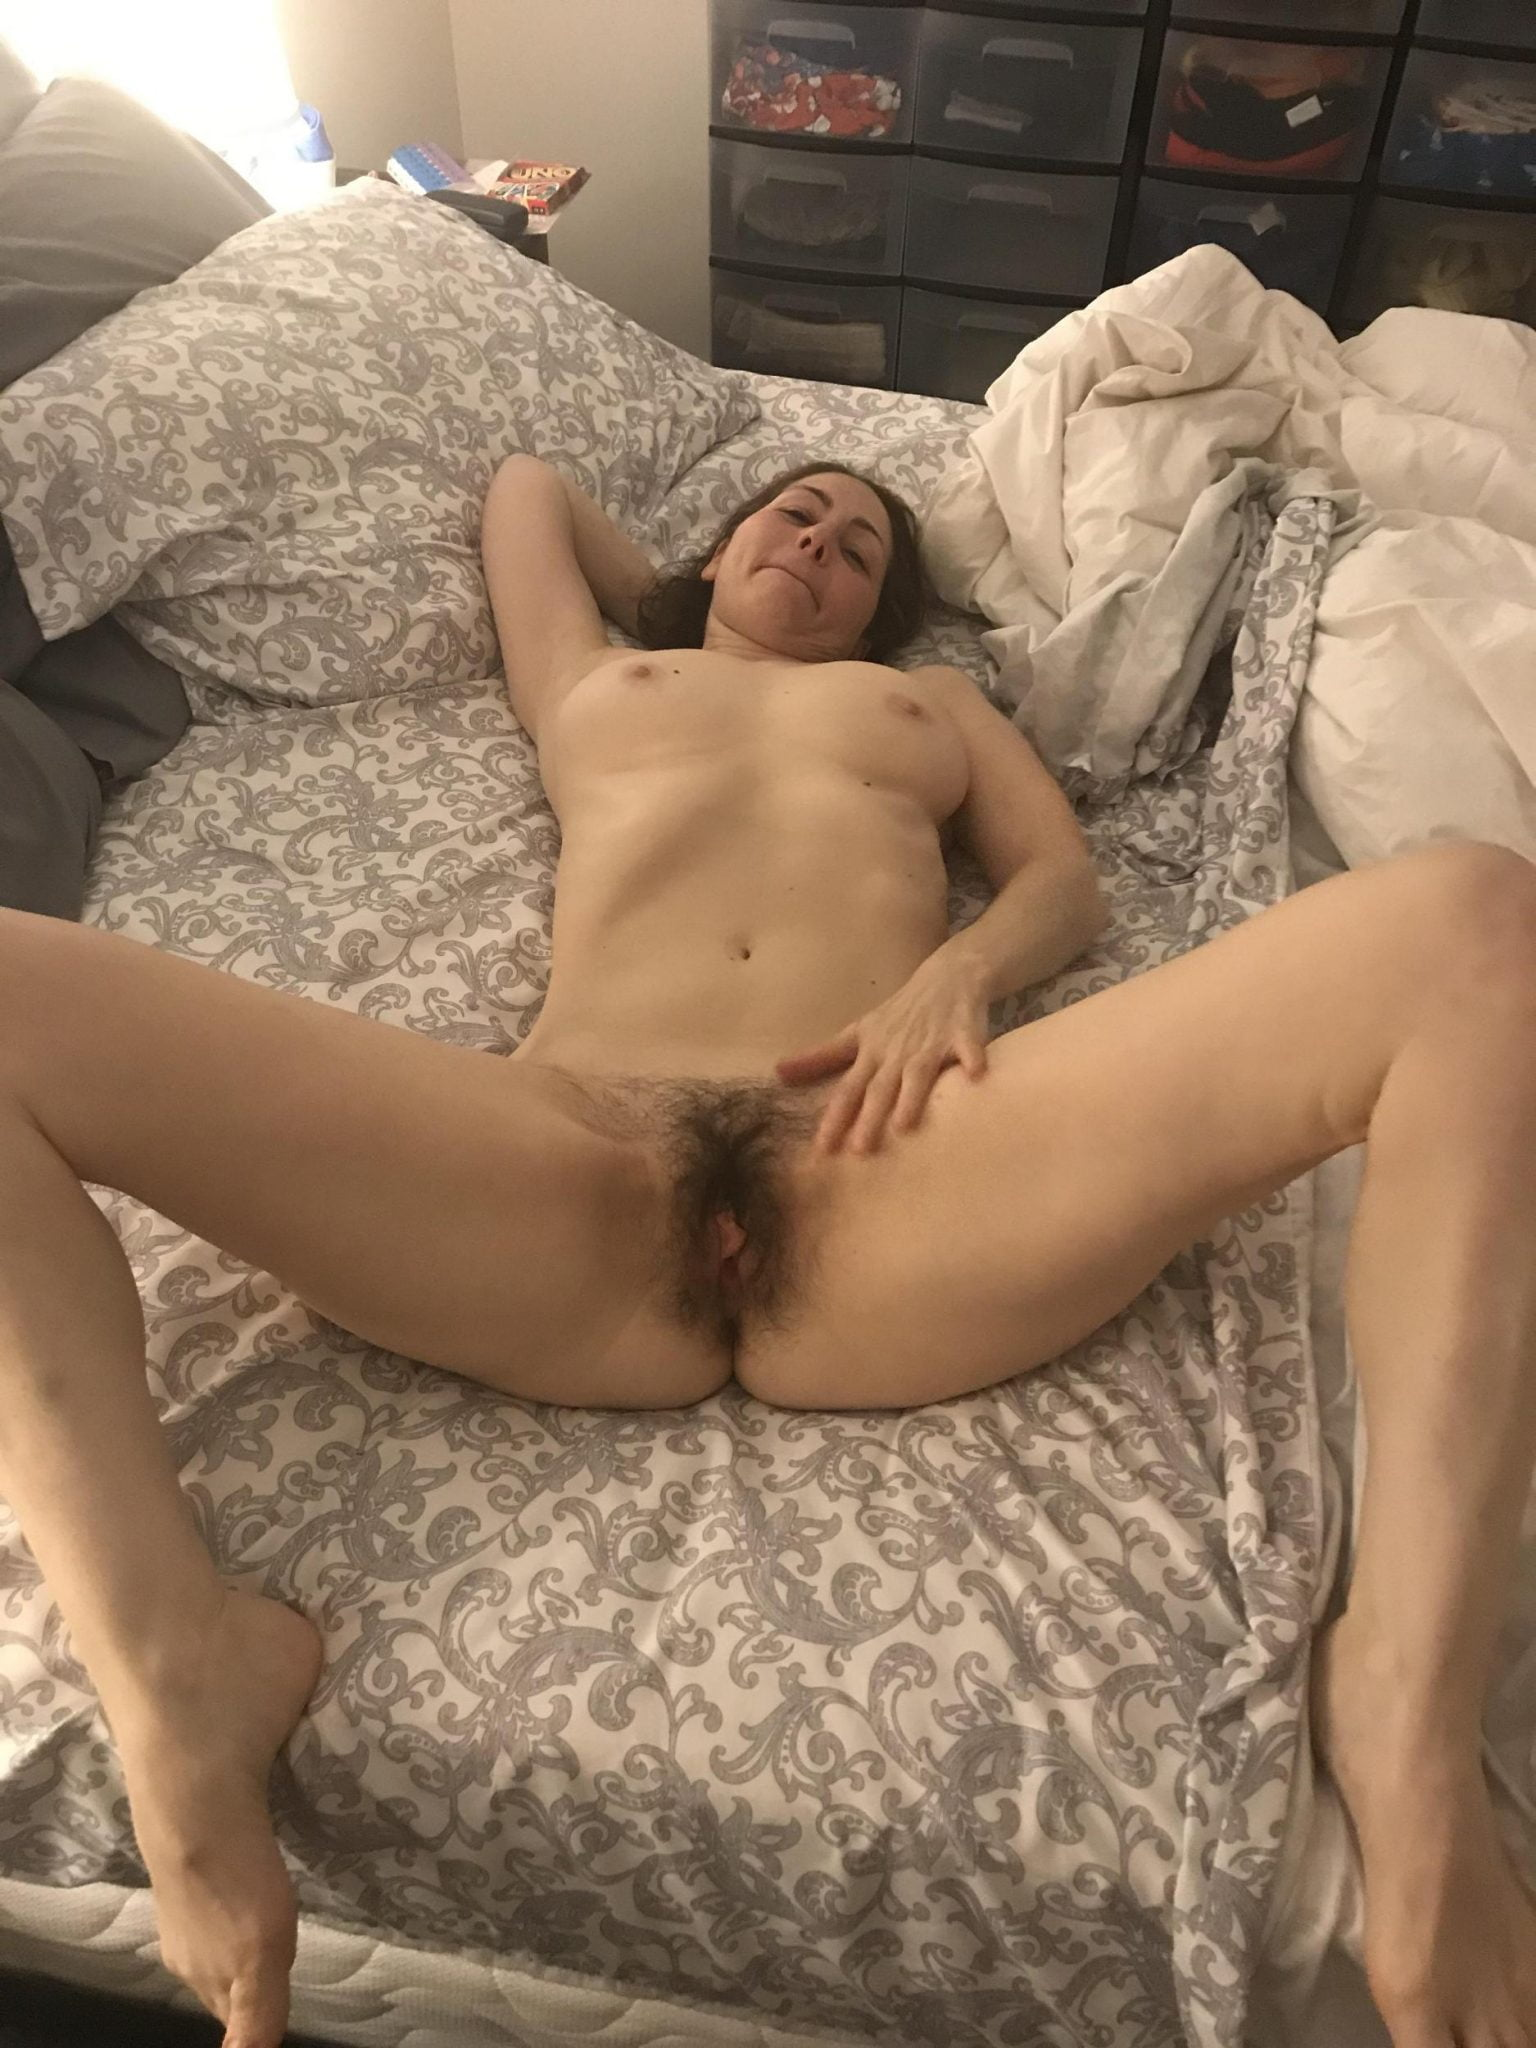 big tit milf souble oenetrated by blacks